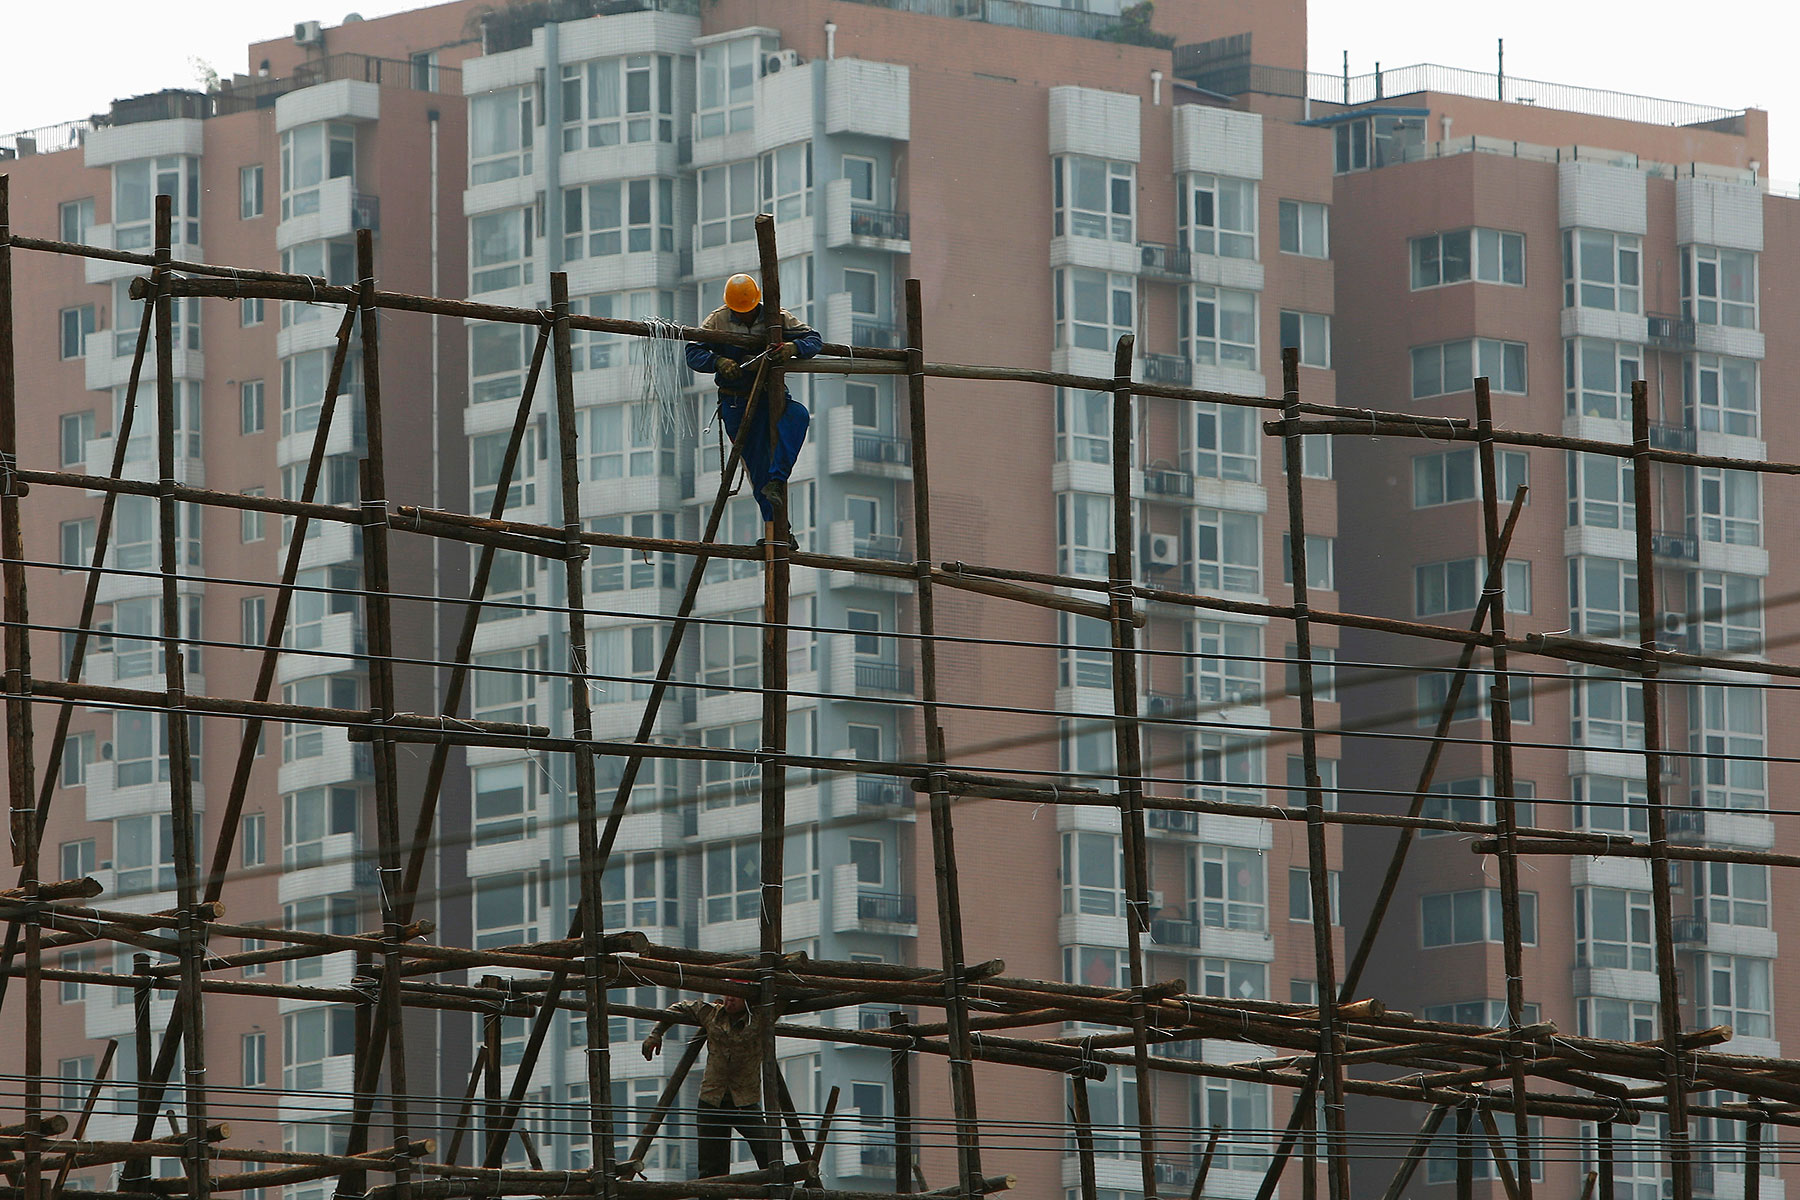 A laborer works on the scaffolding of a construction site for a new residential building in Beijing on May 8, 2014